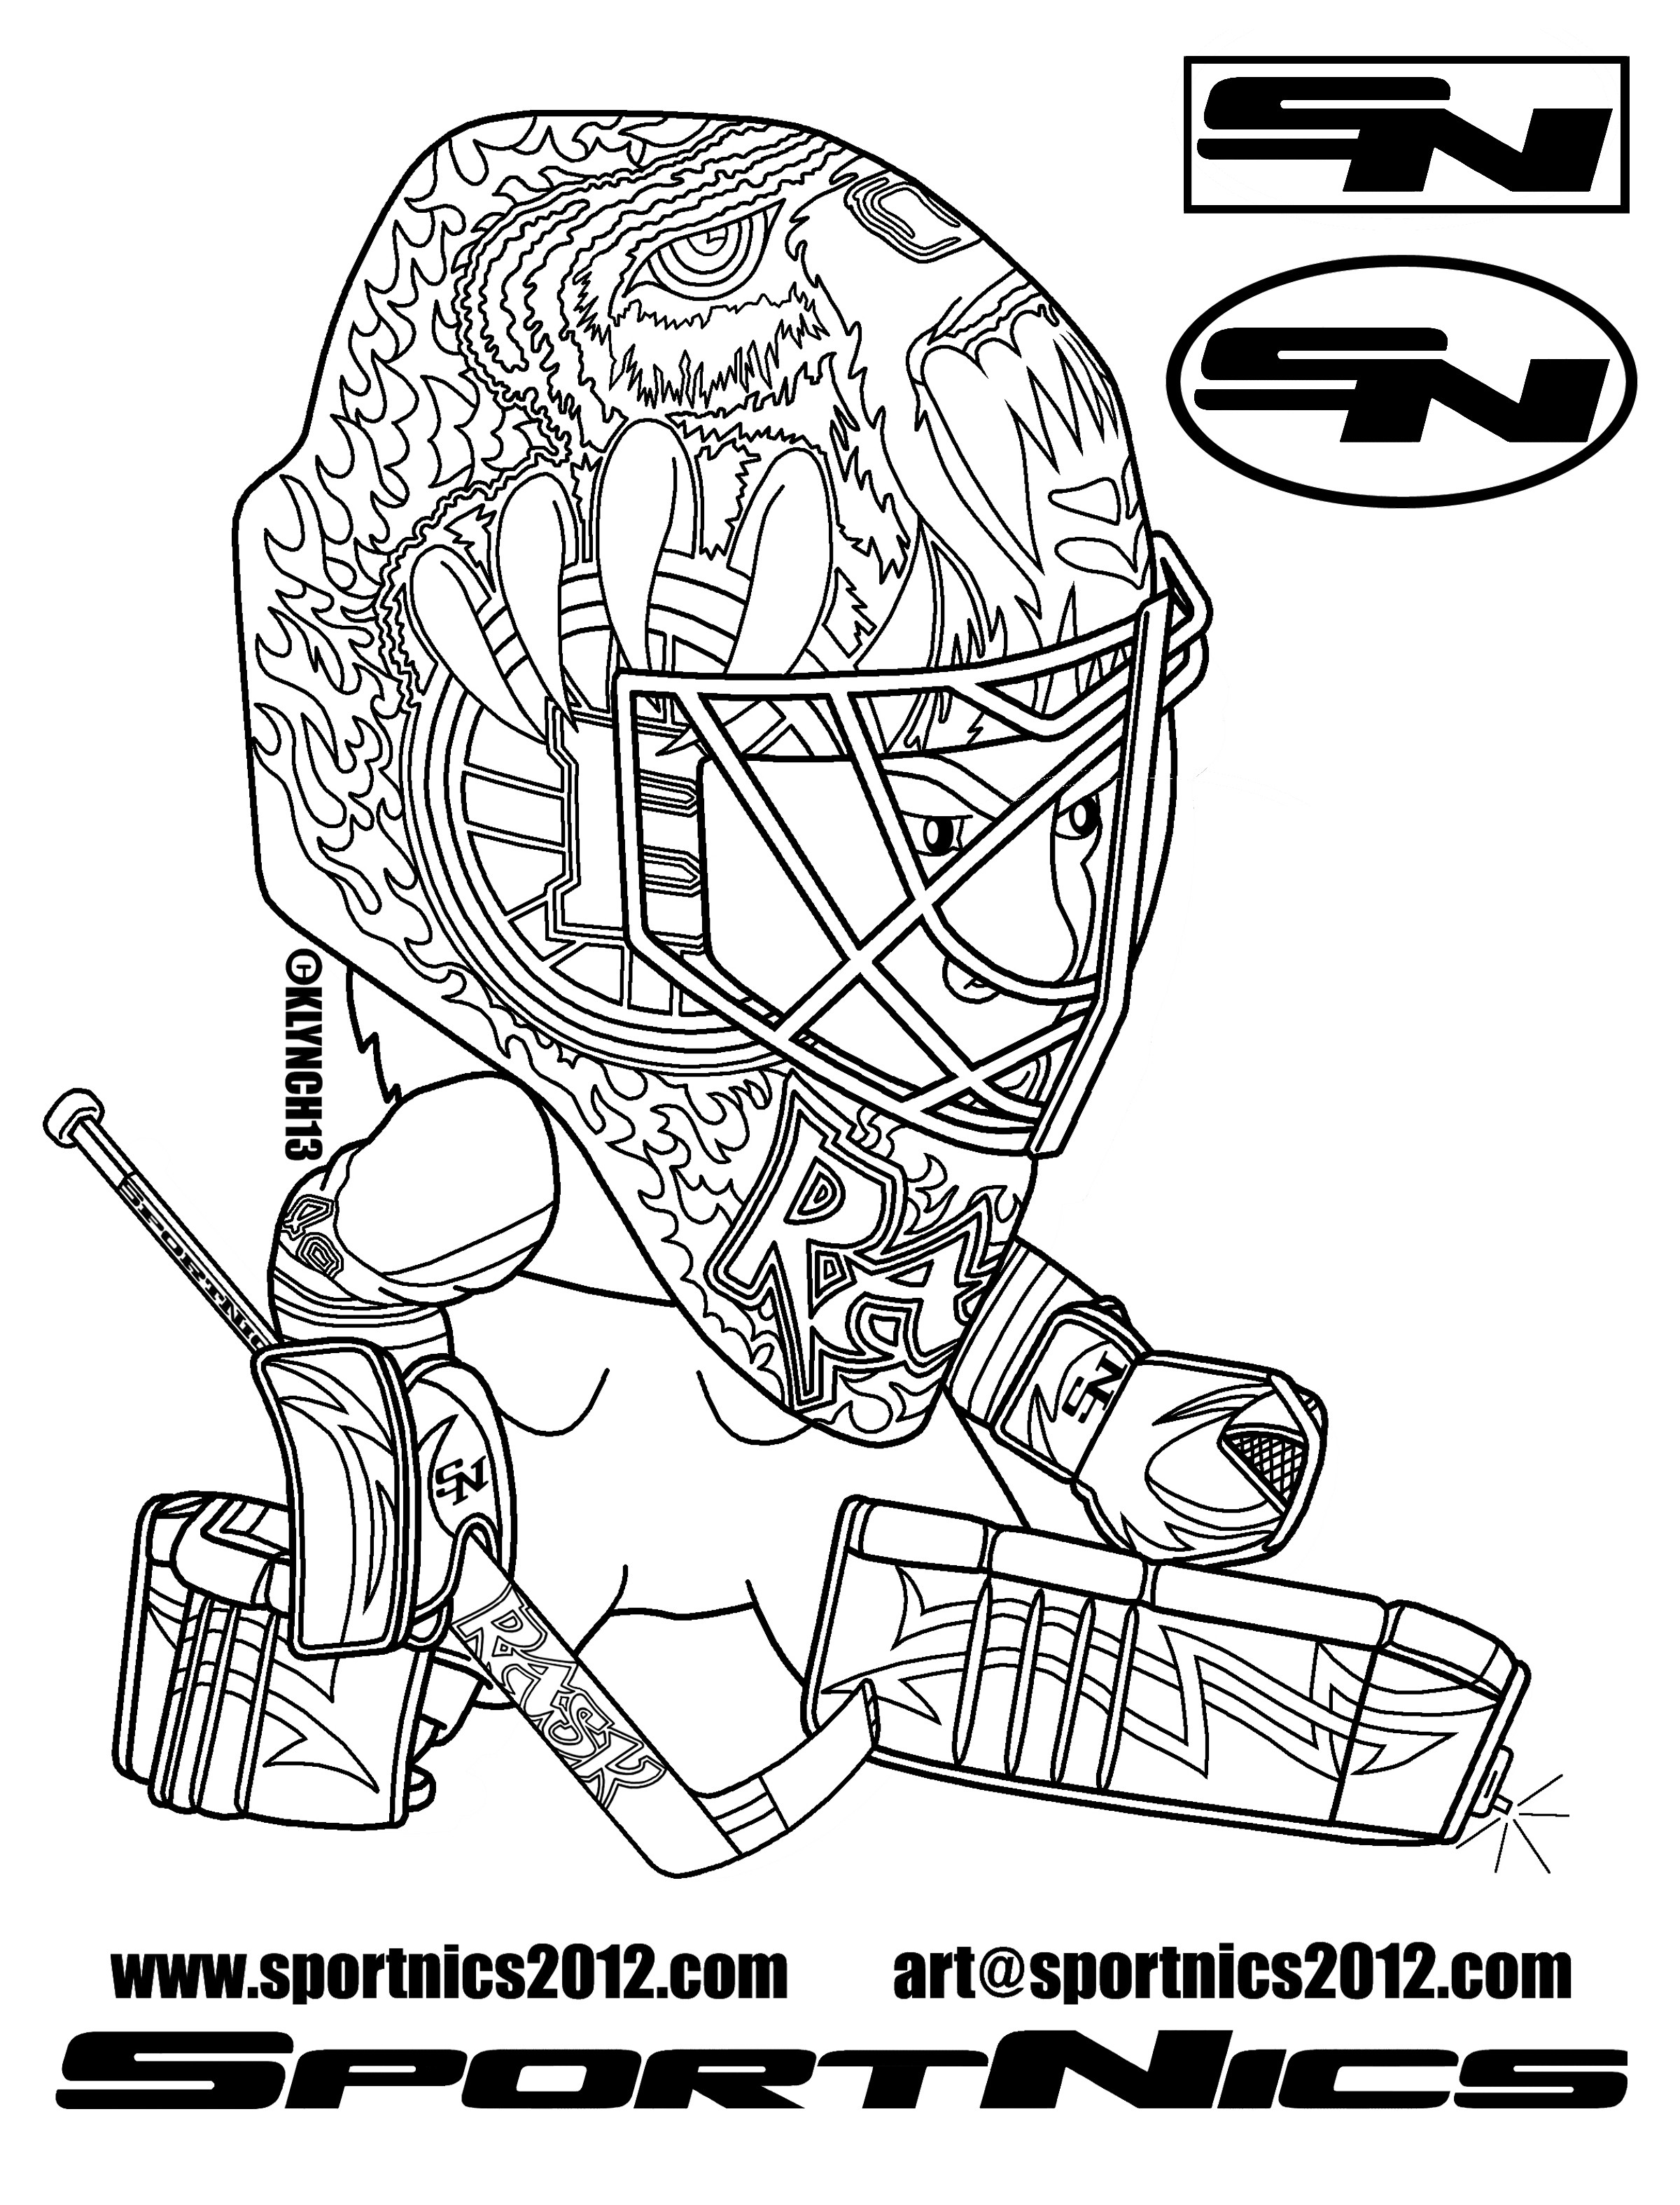 hockey players coloring pages 16 hockey coloring pages free word pdf jpeg png hockey coloring pages players